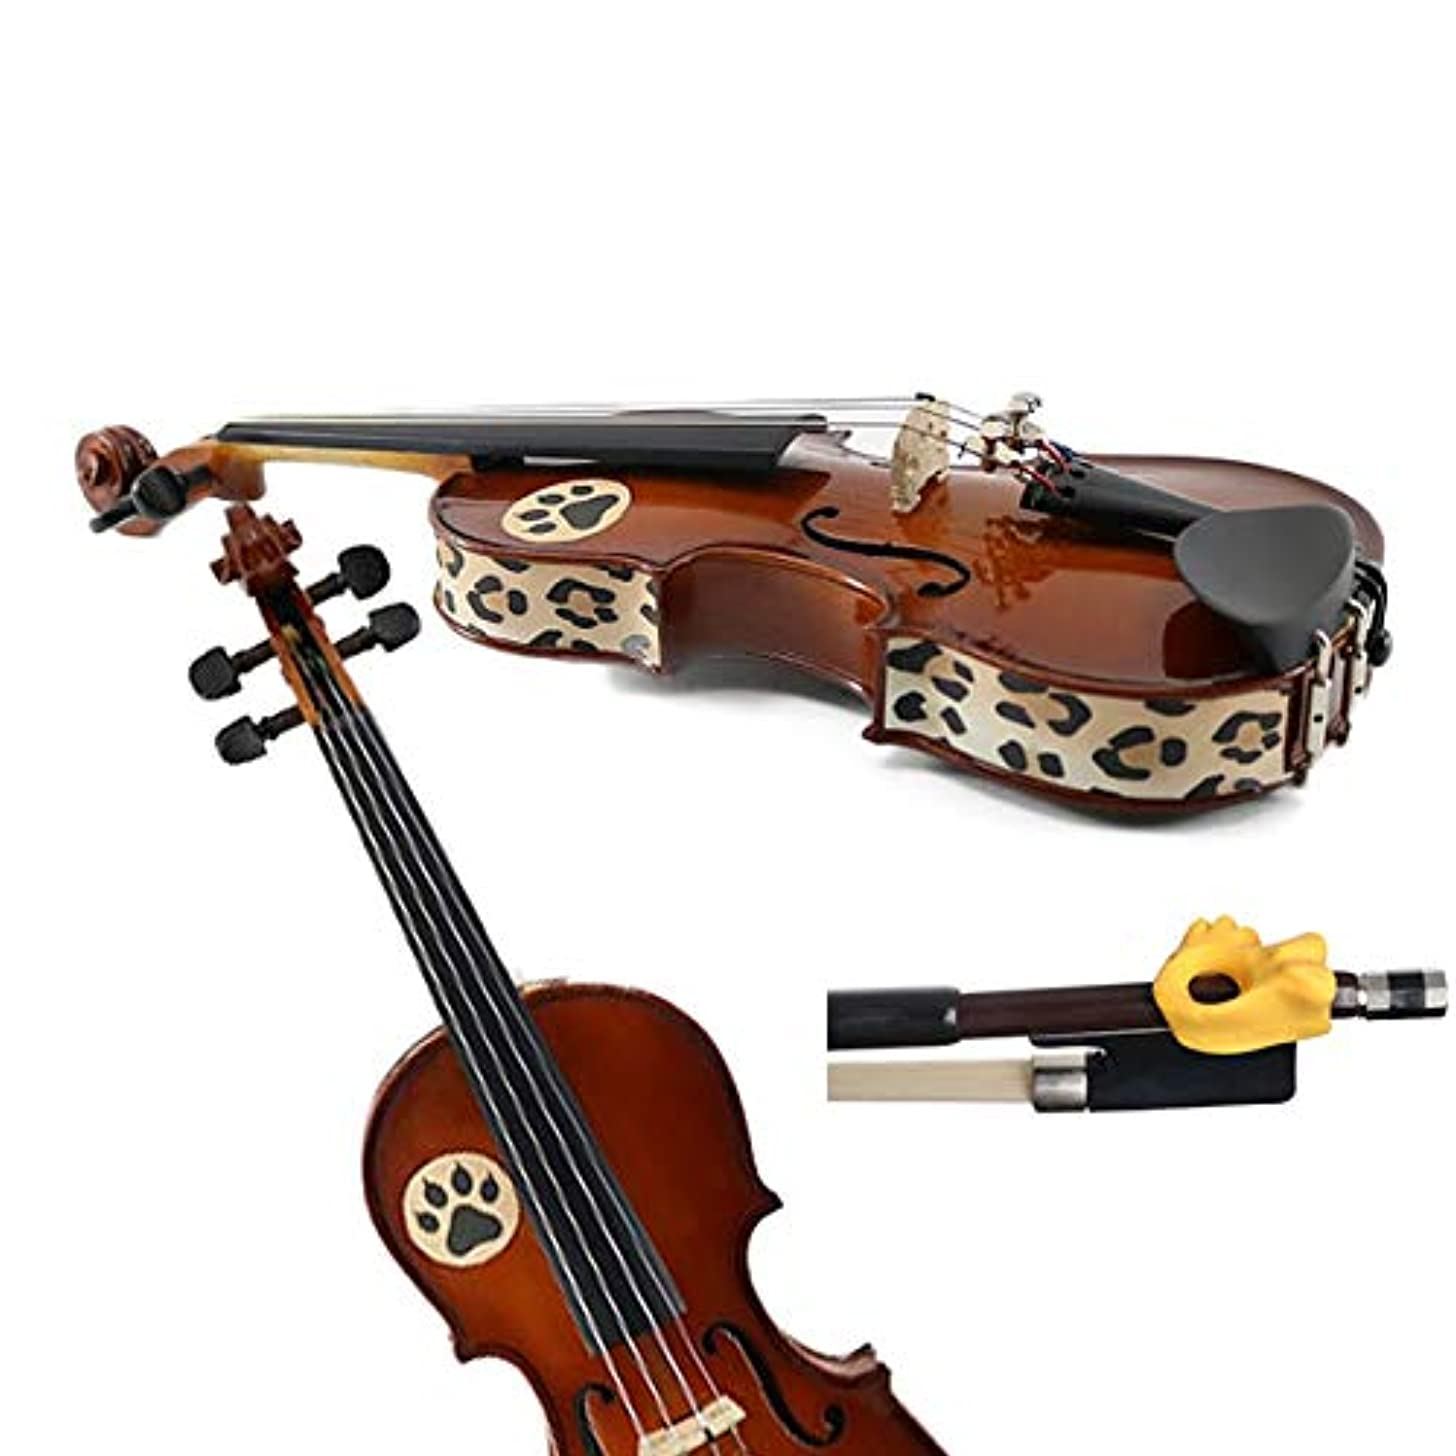 Violin Teaching Aid Pack - Hold Fish Violin Yellow Pinky Support w/Cheetah Violin Skins - Removable Violin Decals - Fits 3/4 Size Violins (Violin not included)